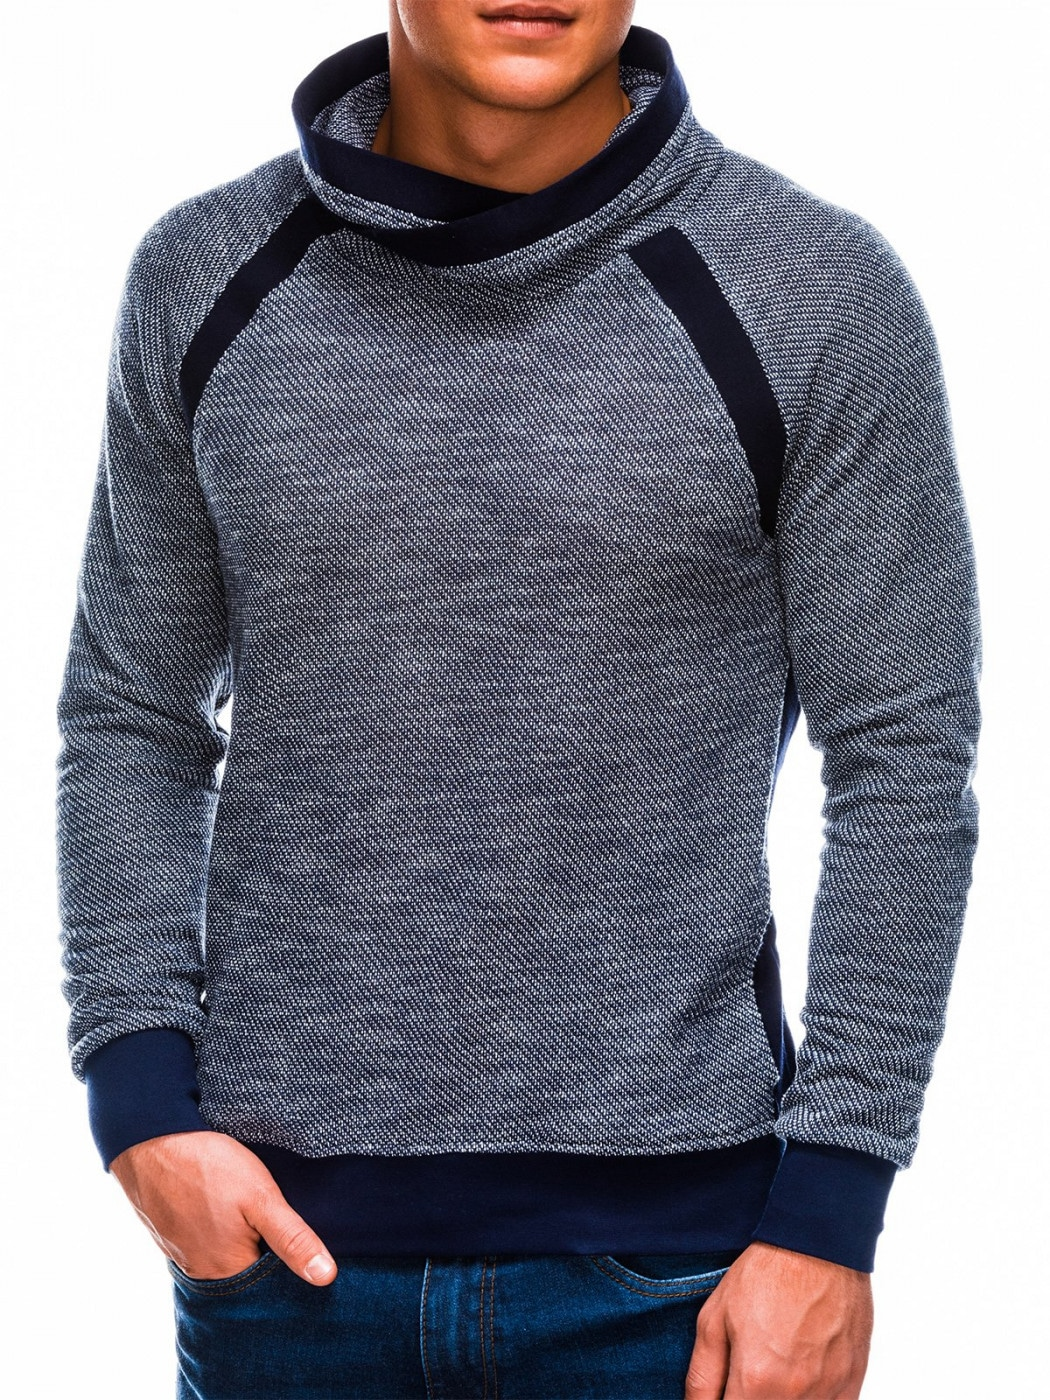 Ombre Clothing Men's stand-up collar sweatshirt B678